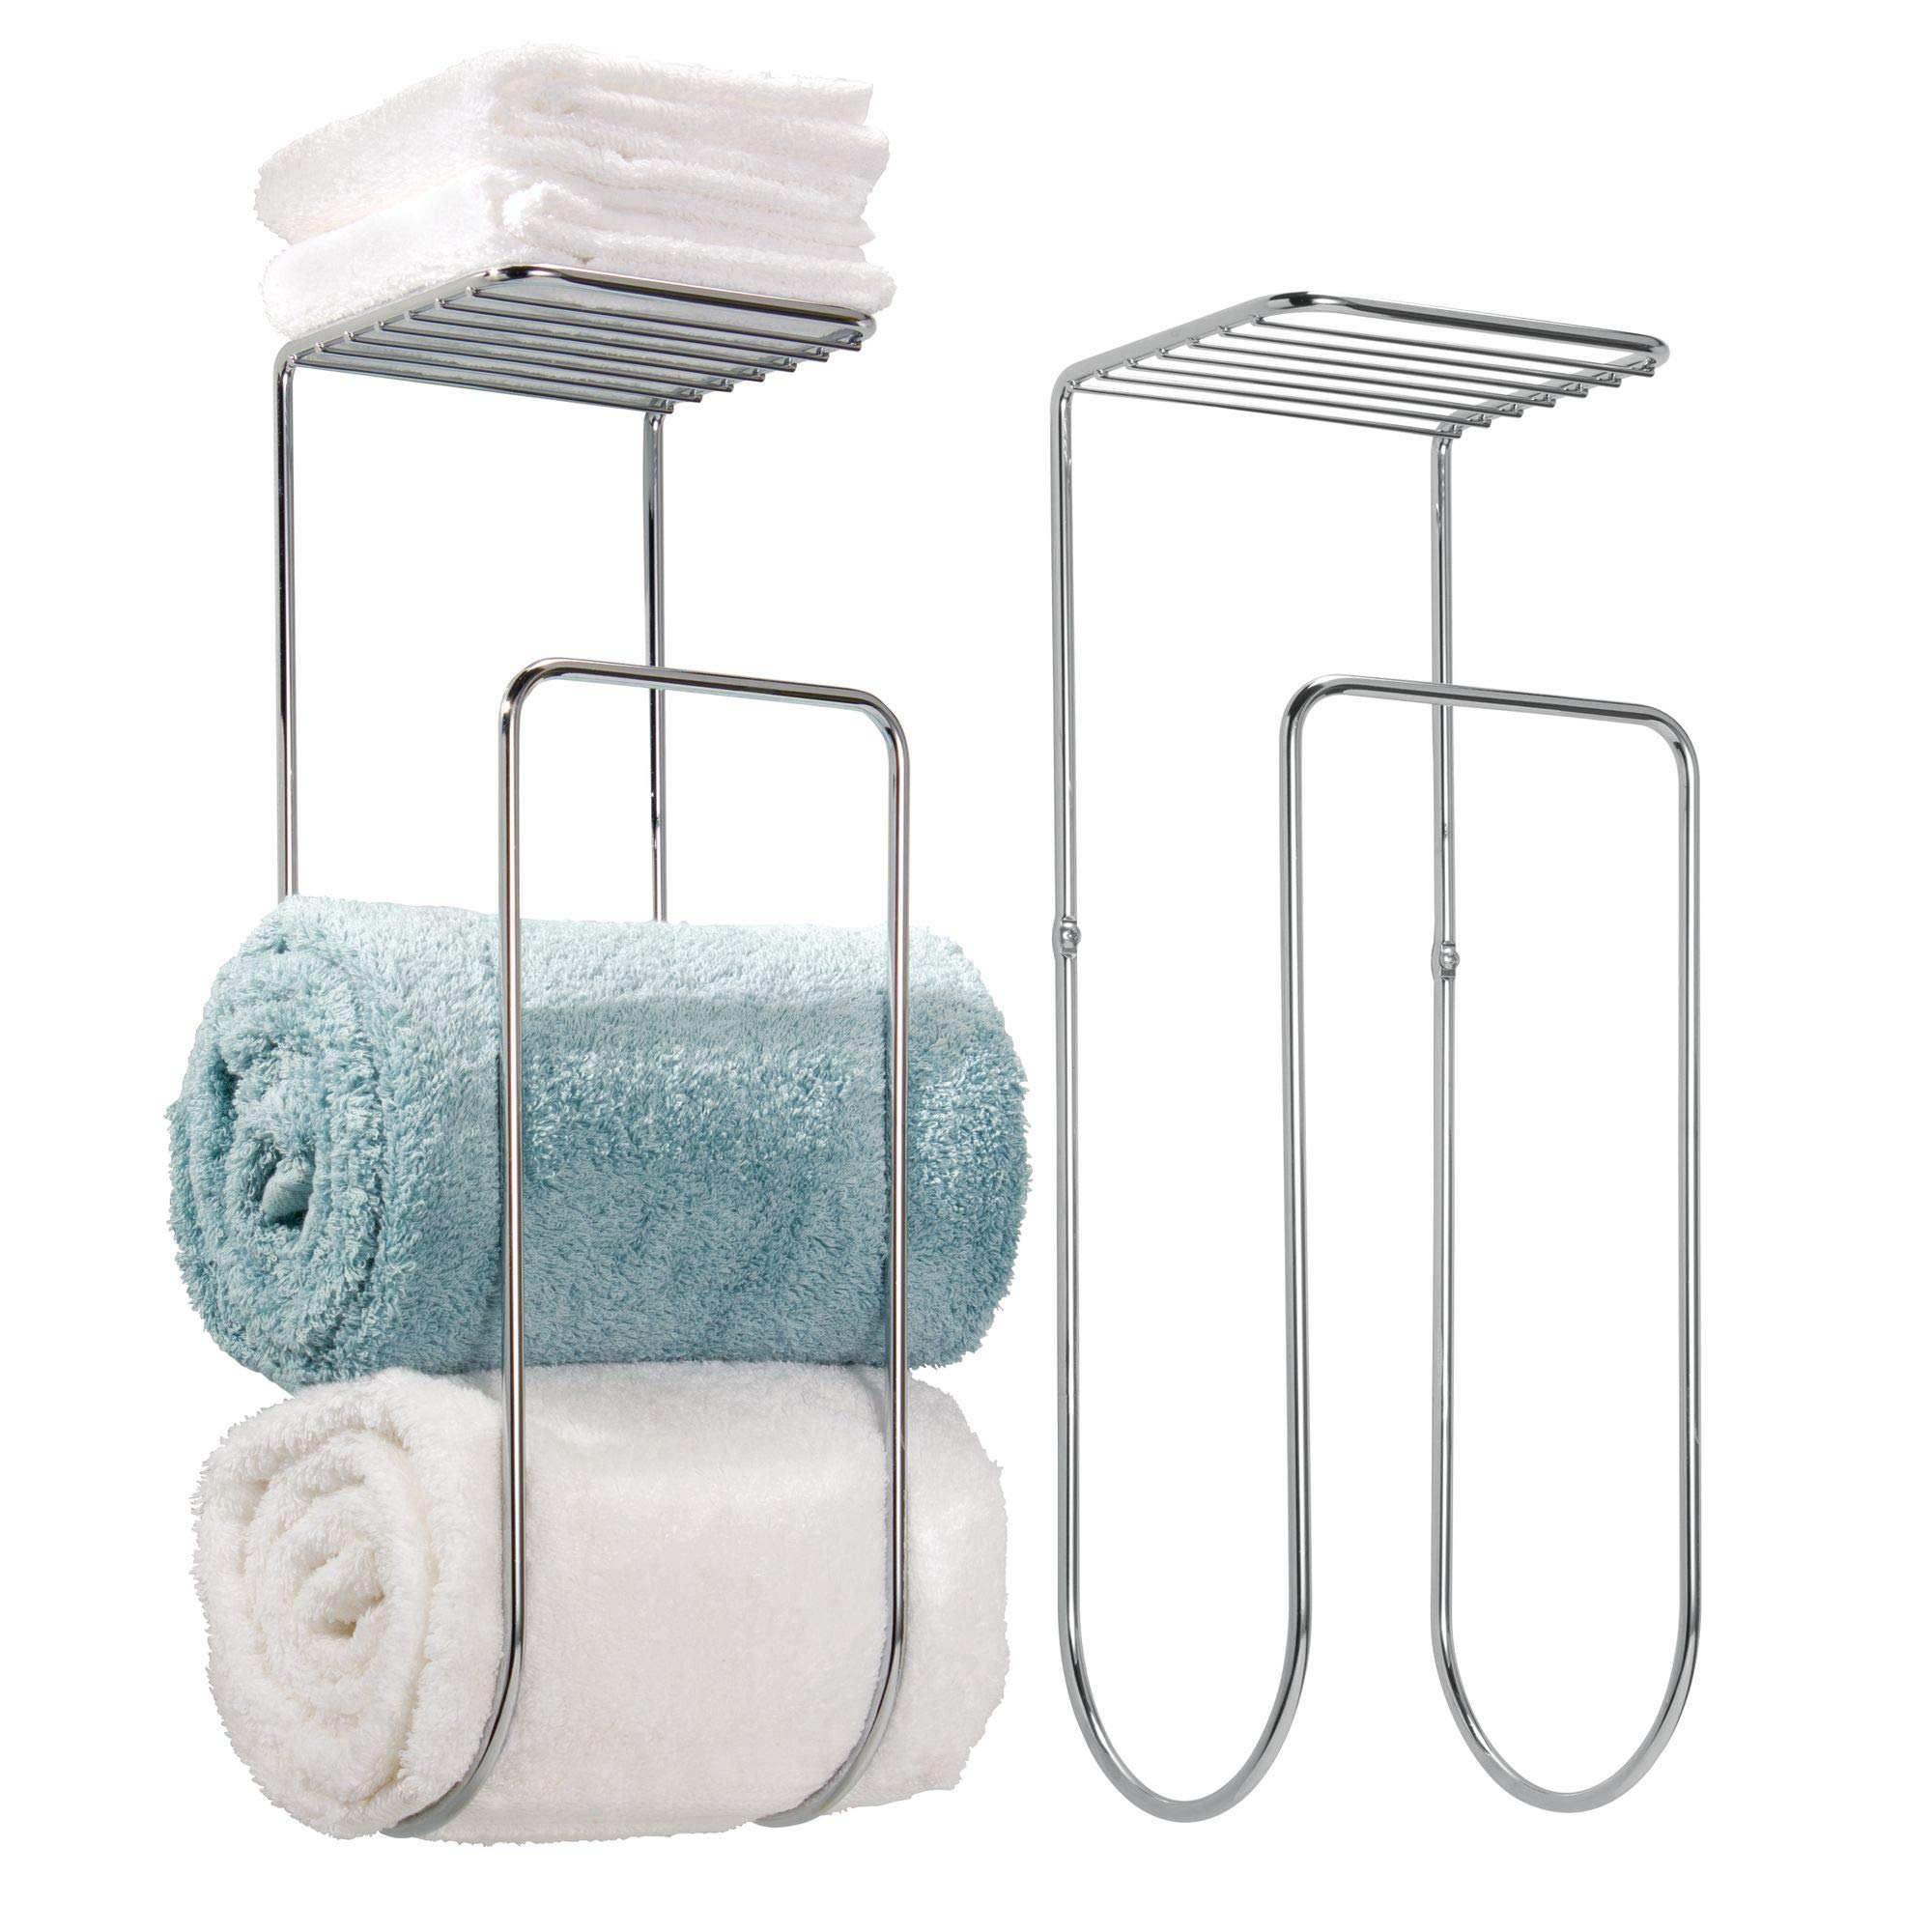 mDesign Modern Metal Wall Mount Towel Rack Holder and Organizer with Storage Shelf for Bathroom Organizing of Washcloths, Hand/Face or Bath Towels, Beach Towels - 2 Pack, Chrome